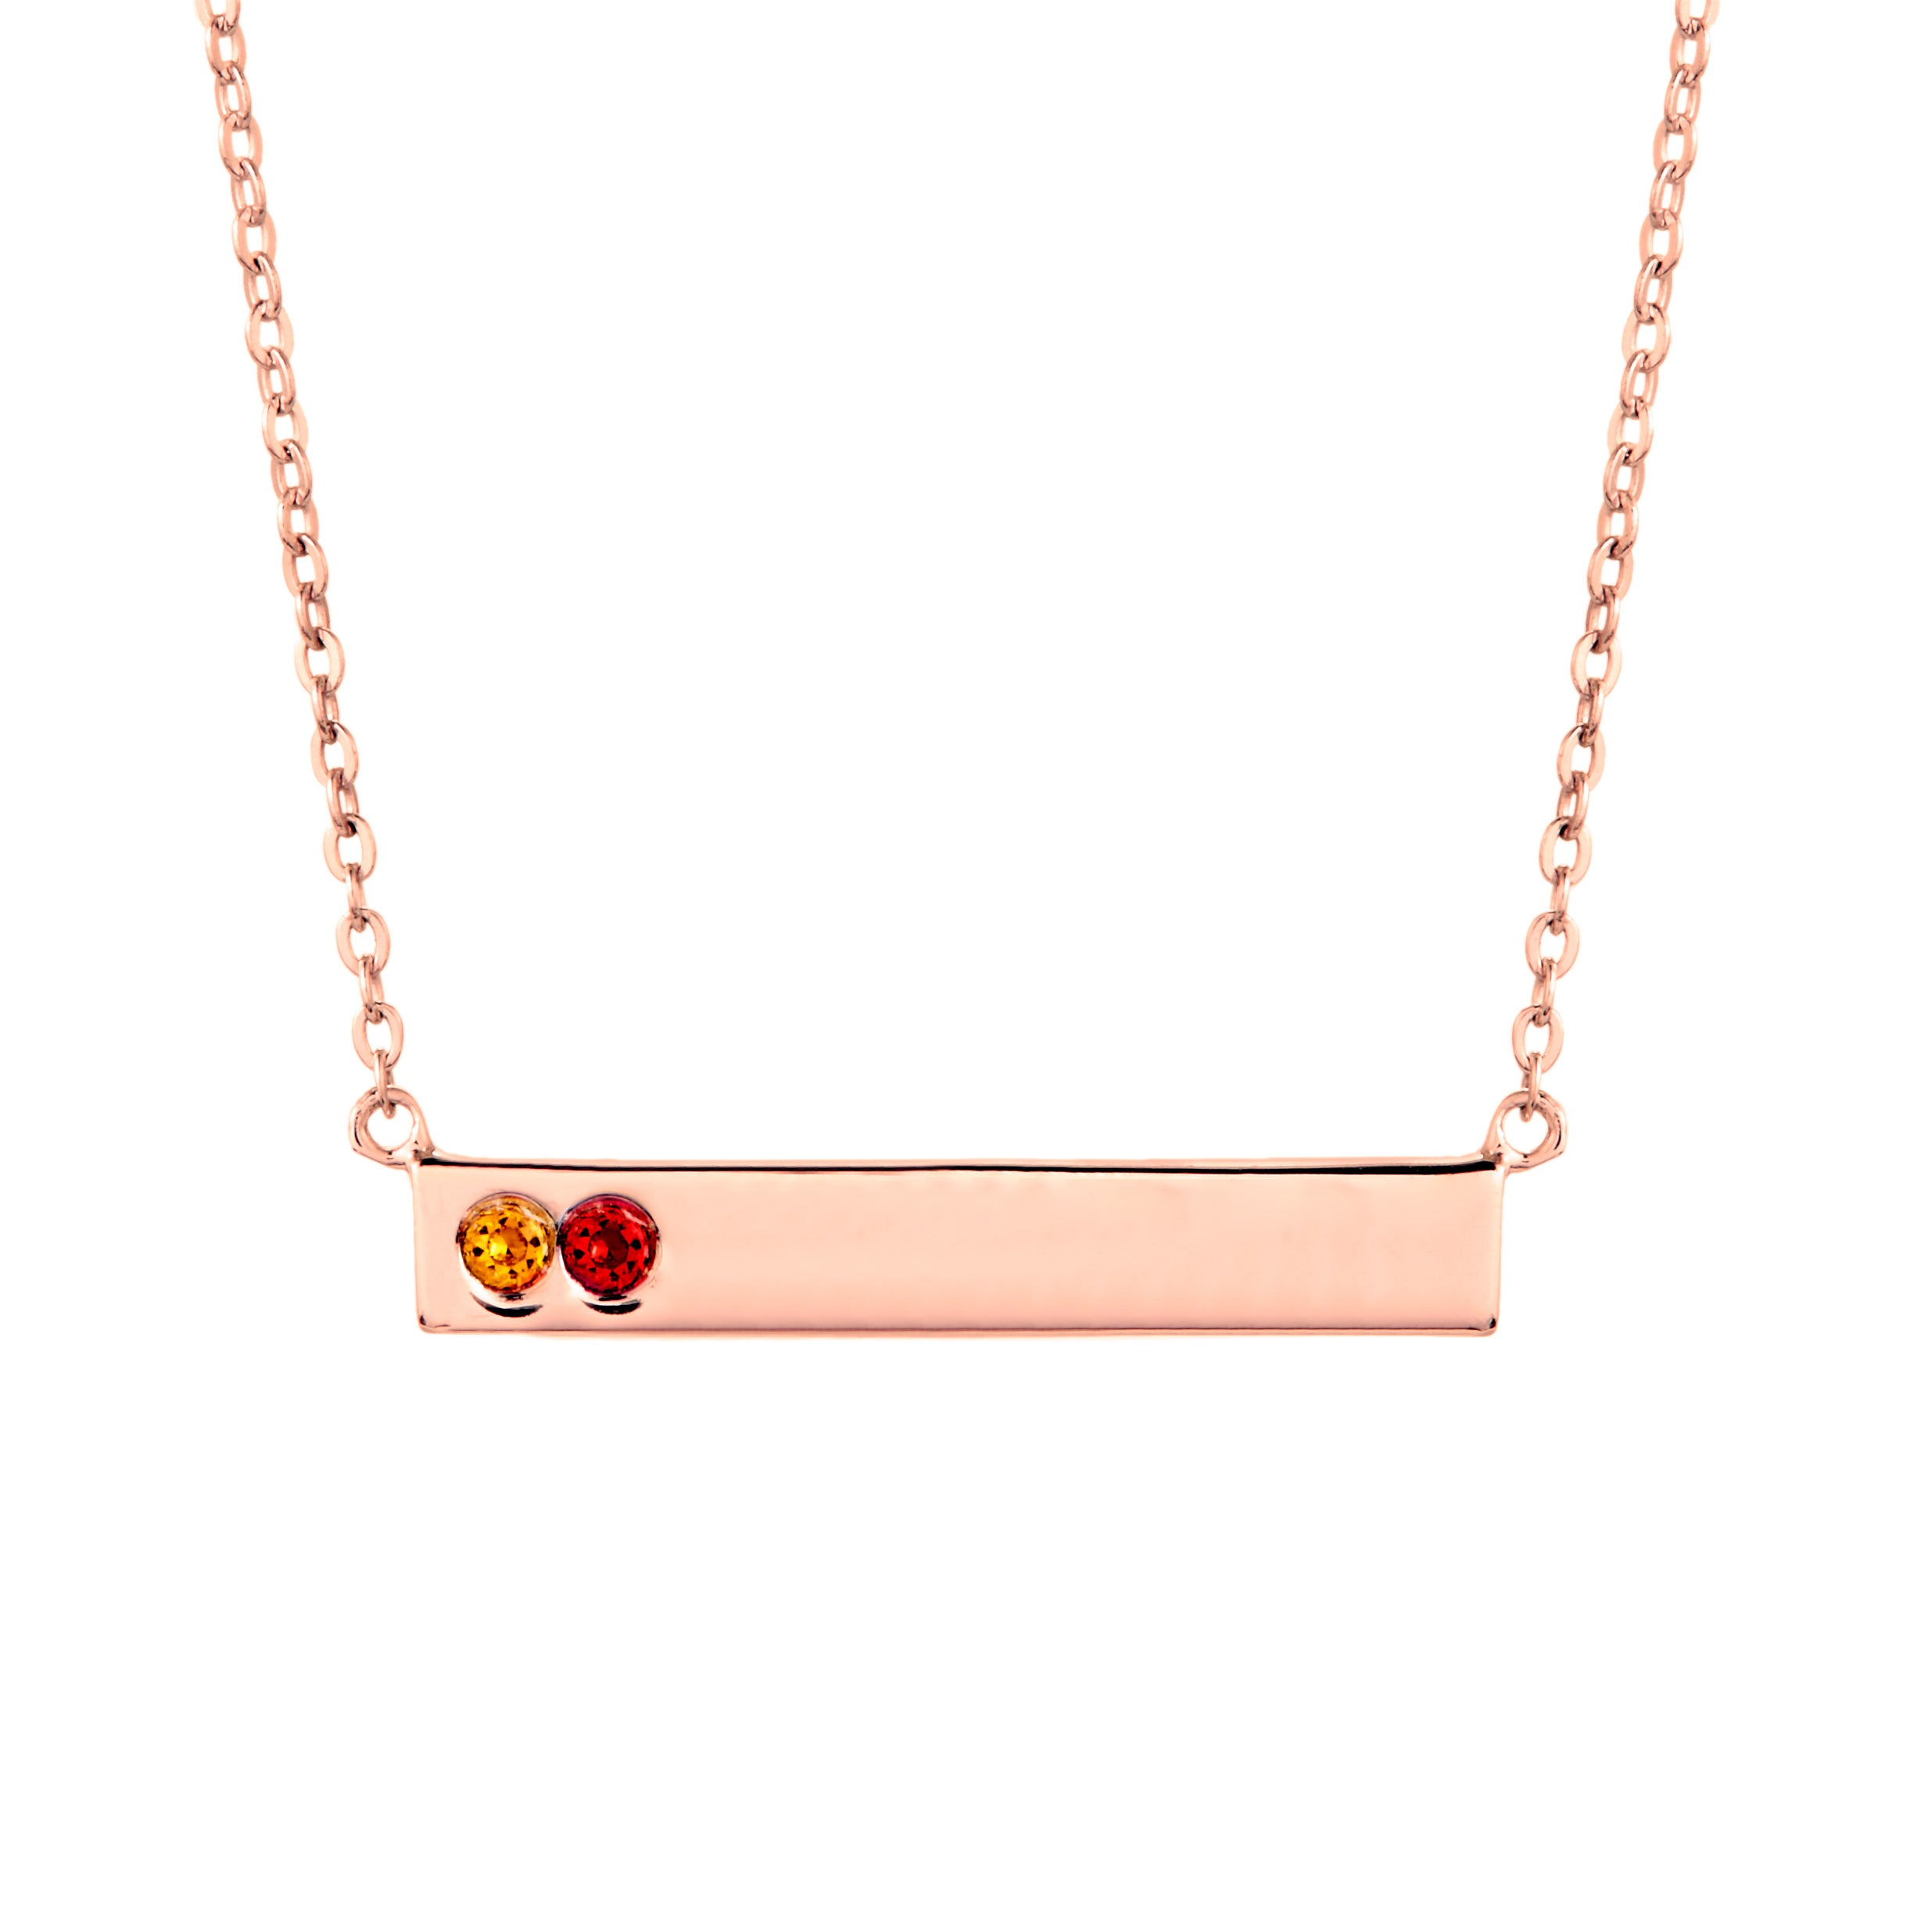 bar pendant products supreme profile gold low store image